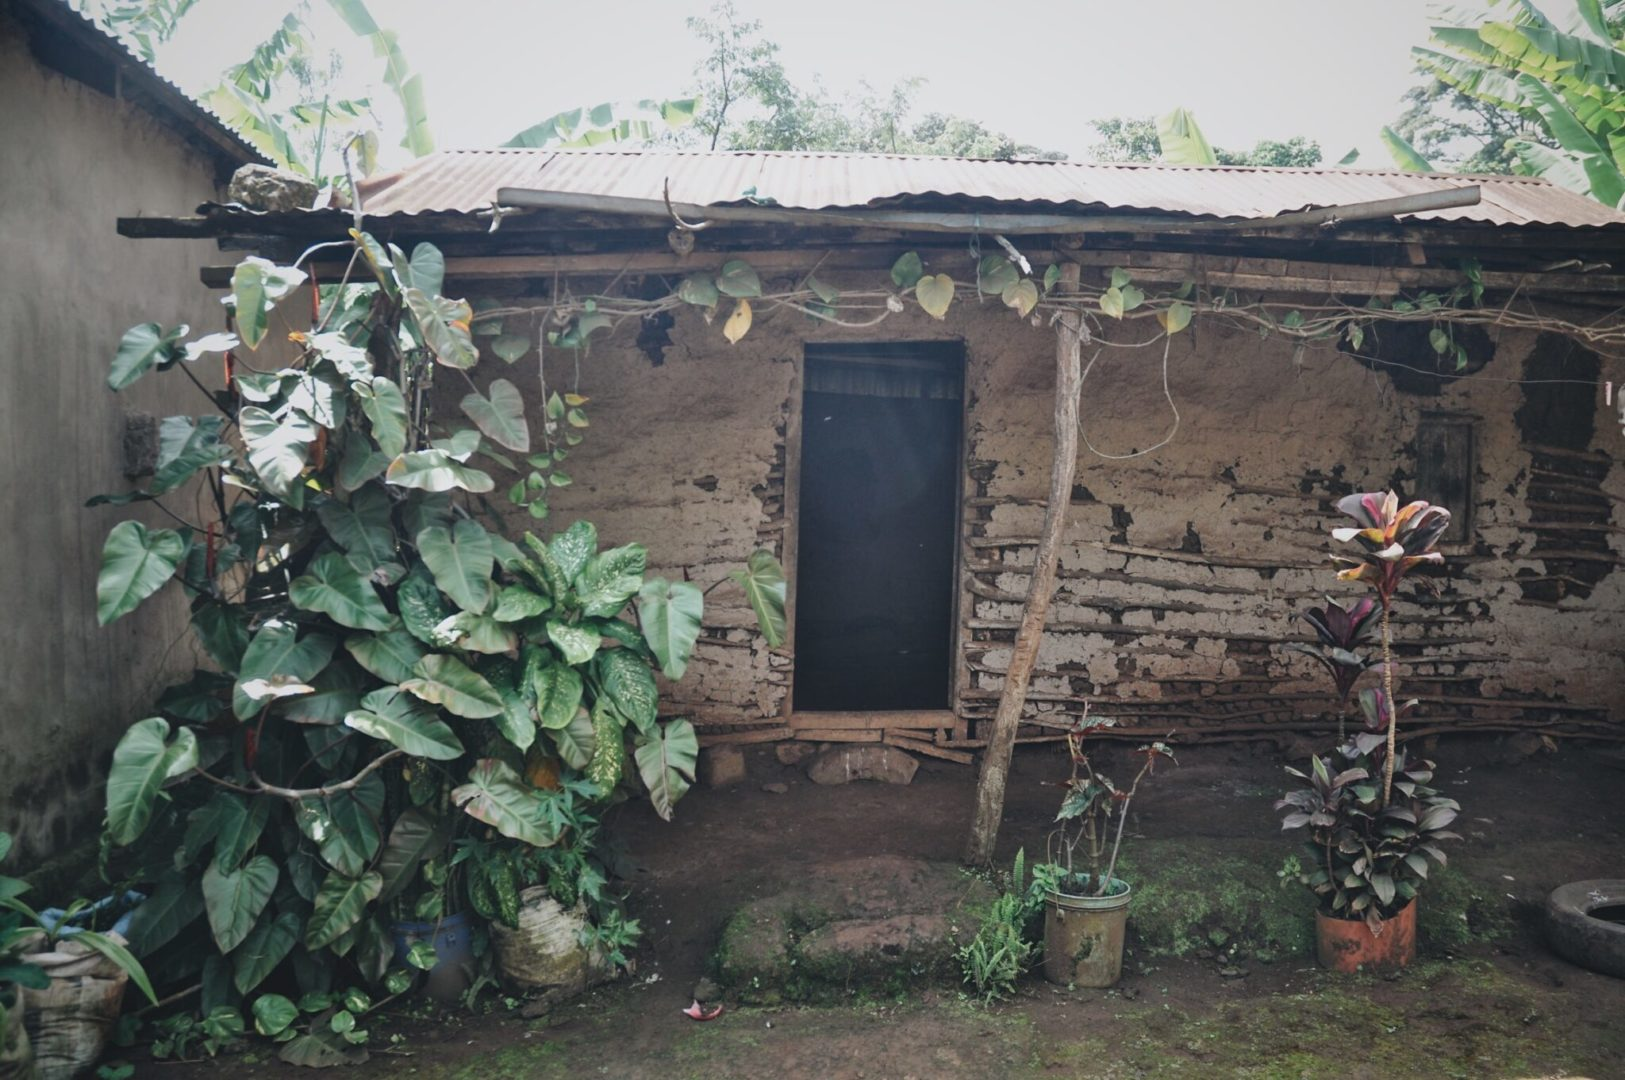 The materials and quality of one's physical home can be one of several indicators of lived poverty.